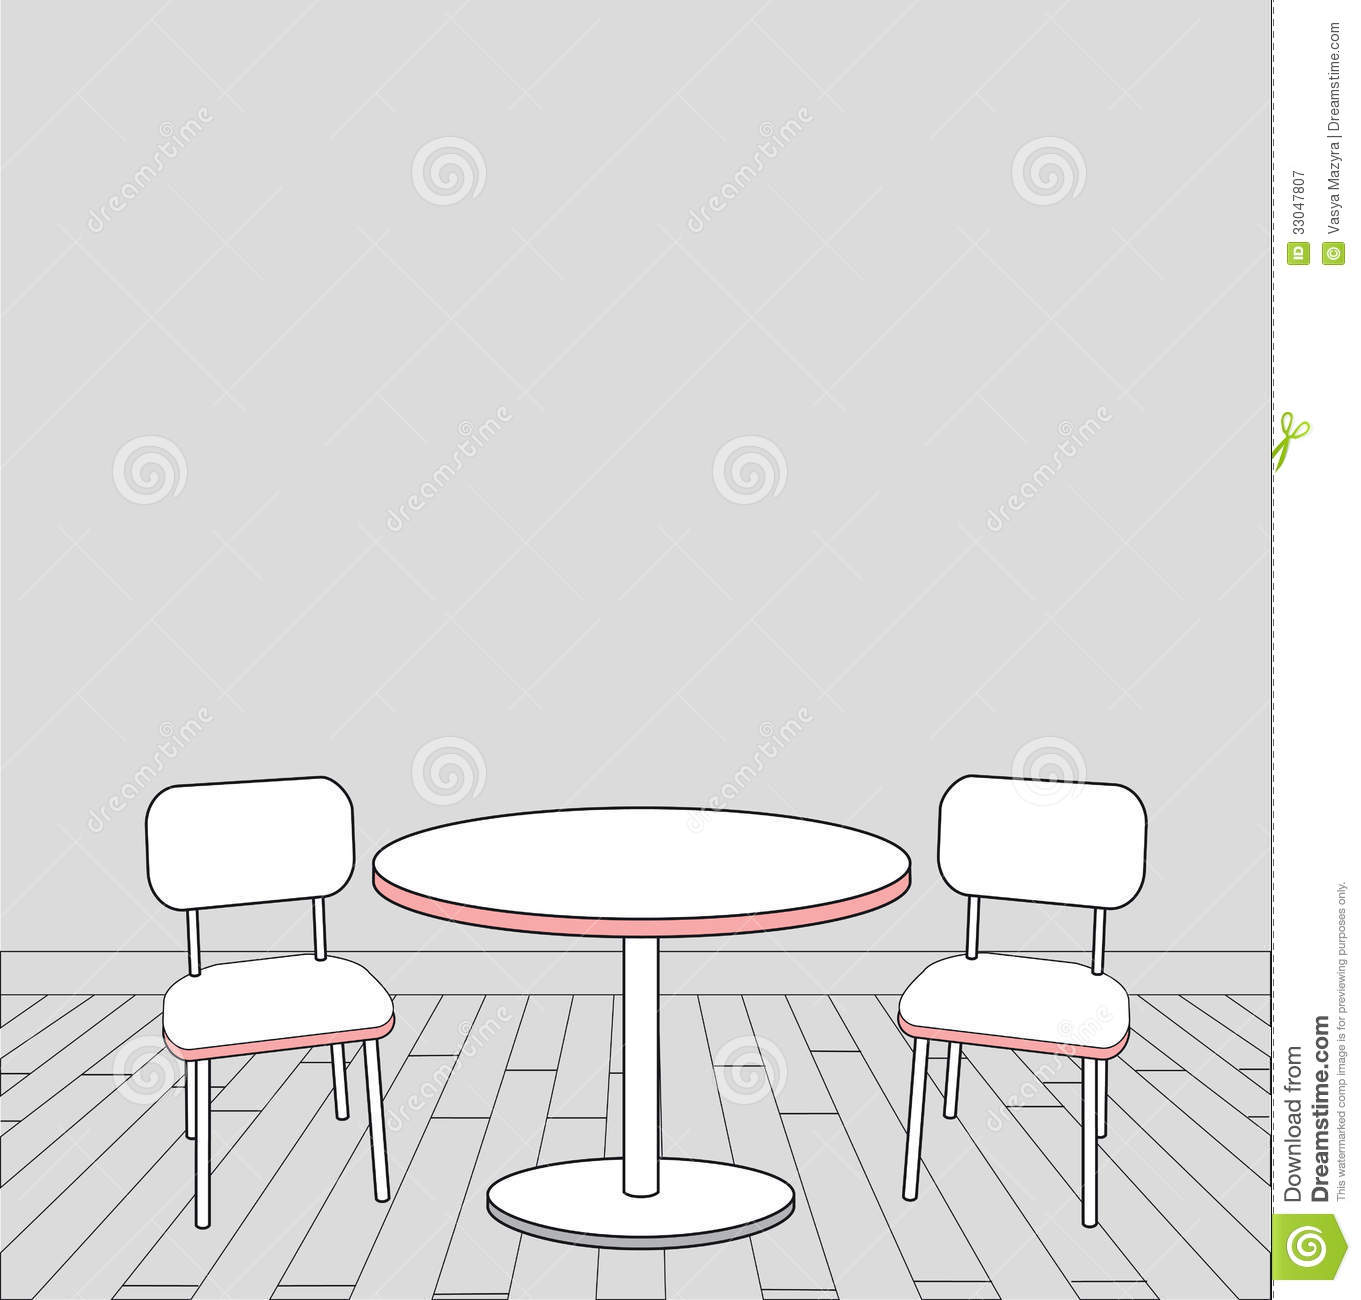 Sketch Of Modern Interior Table And Chairs Vector Royalty